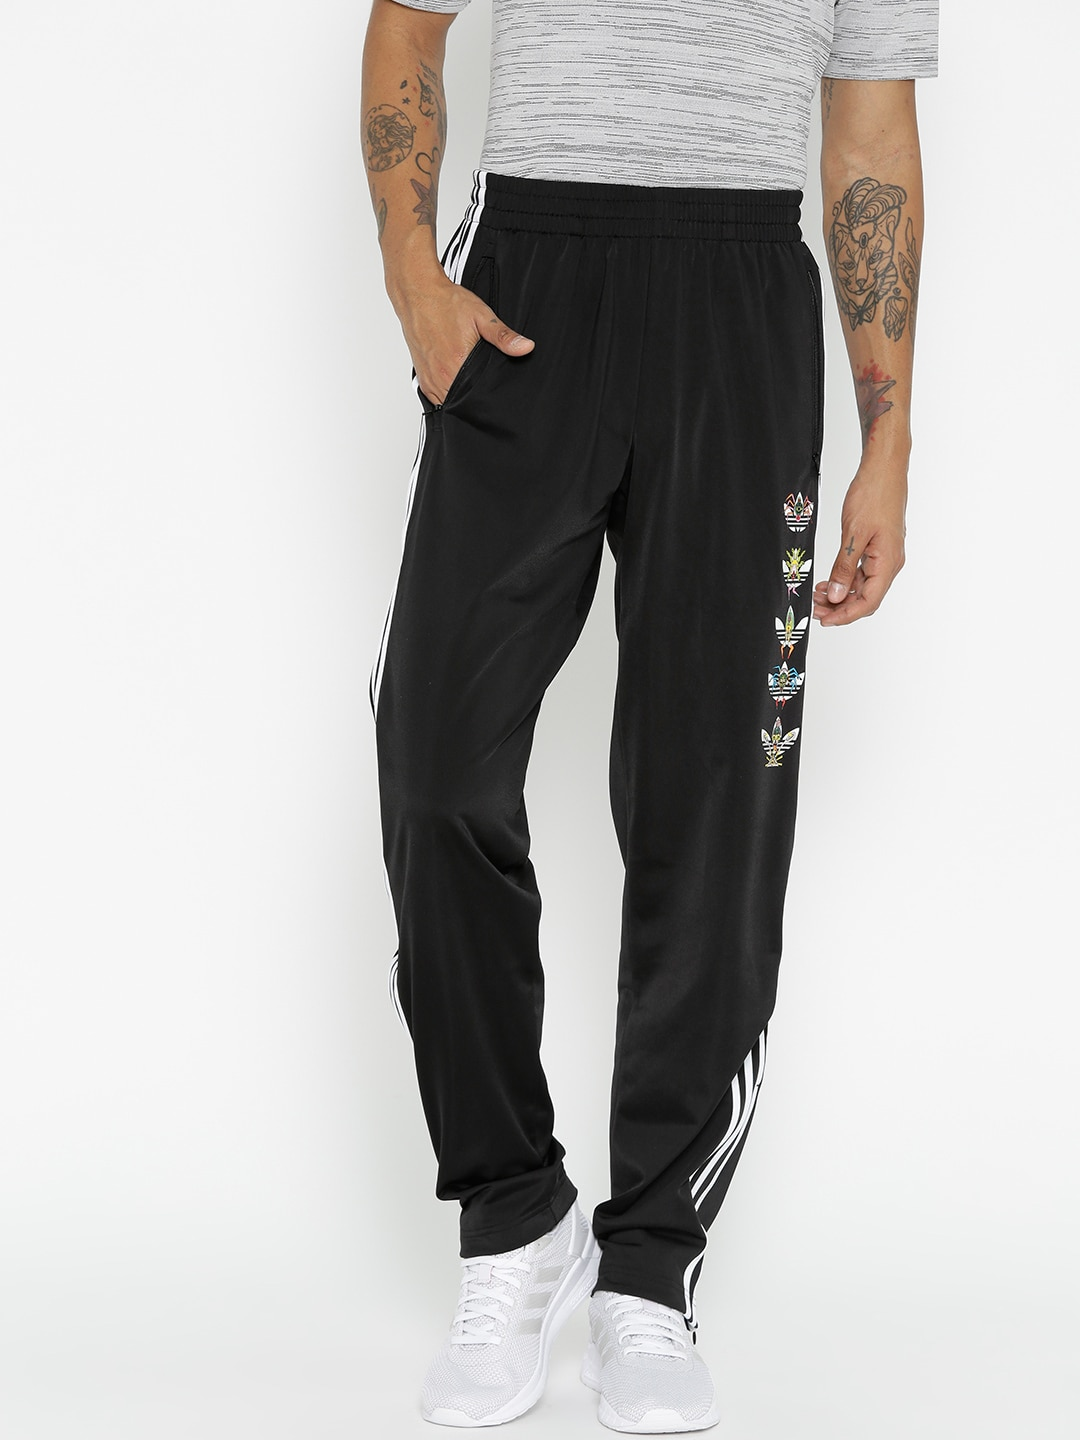 c0142f5c5741 Adidas Campus Tshirts Track Pants Pants - Buy Adidas Campus Tshirts Track  Pants Pants online in India